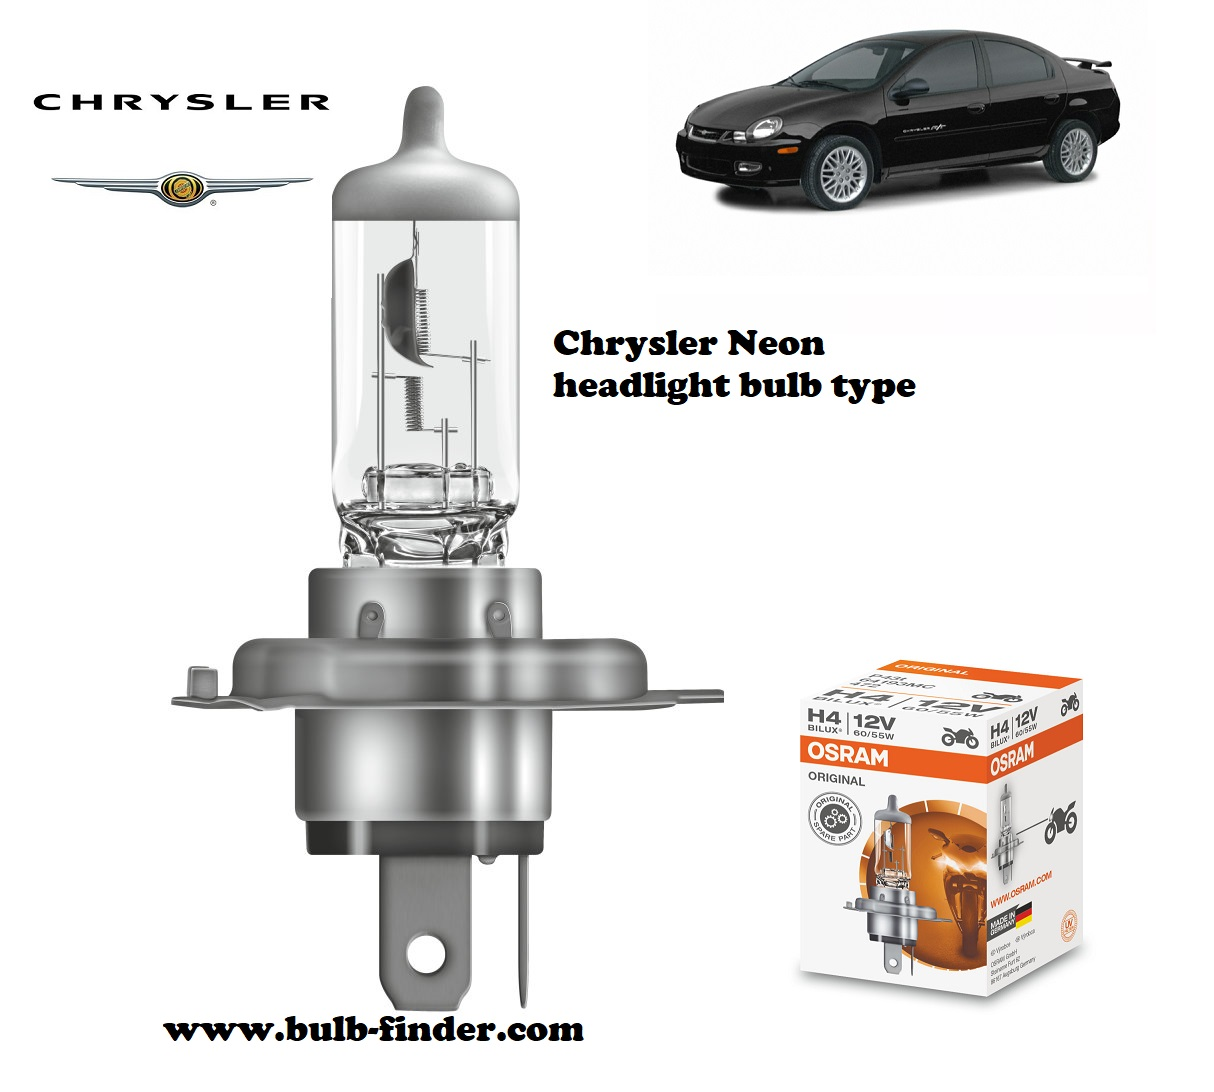 Chrysler Neon MK2 headlamp bulb specification